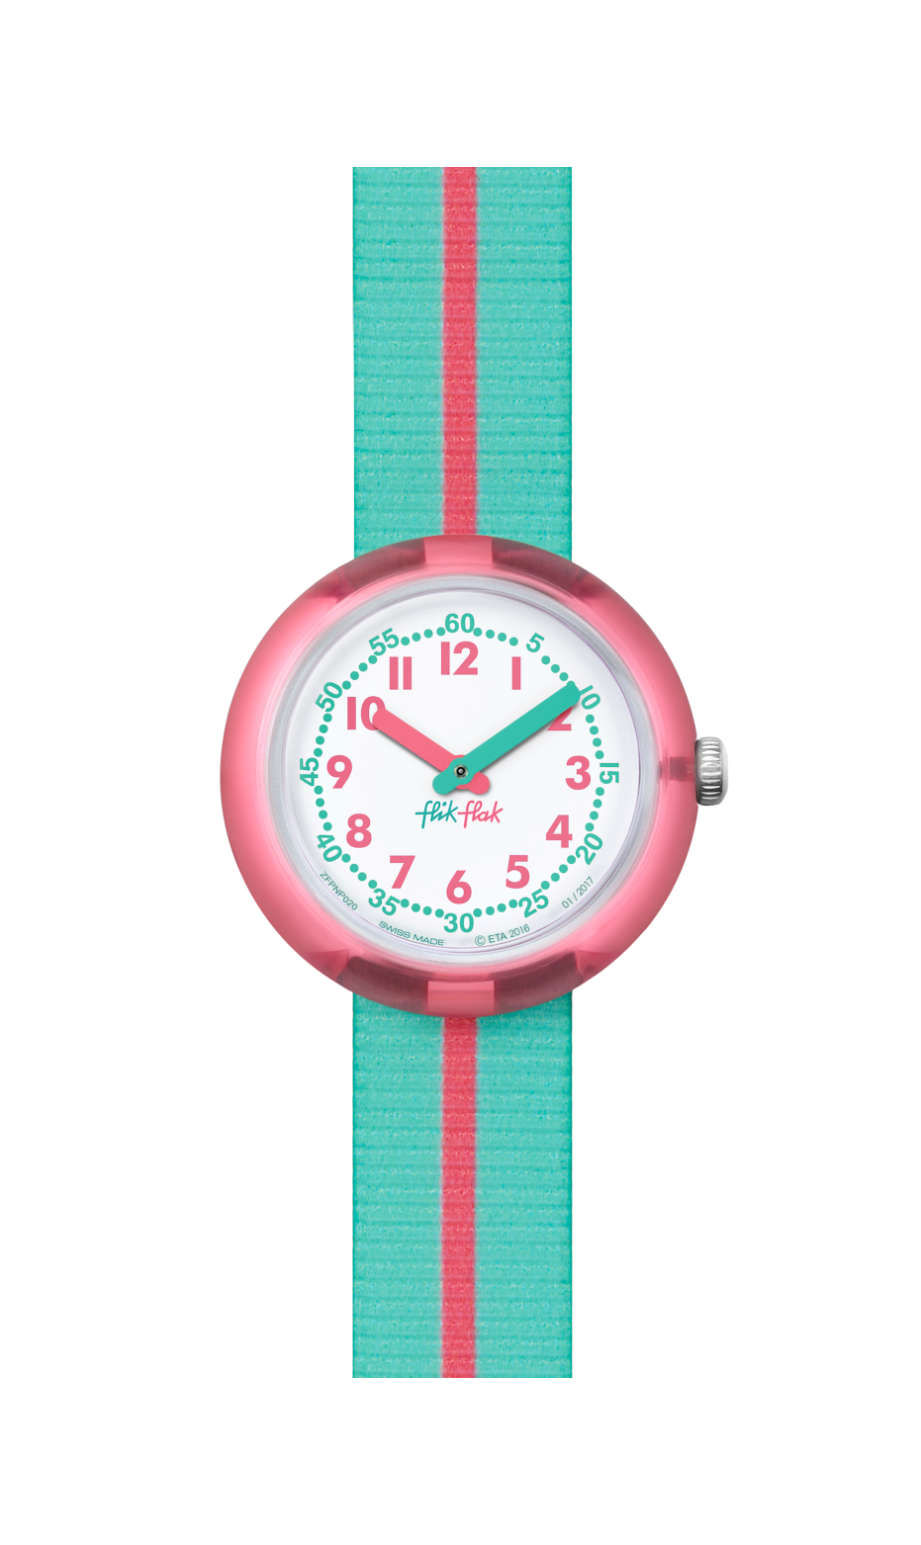 Swatch - PINK BAND - 1